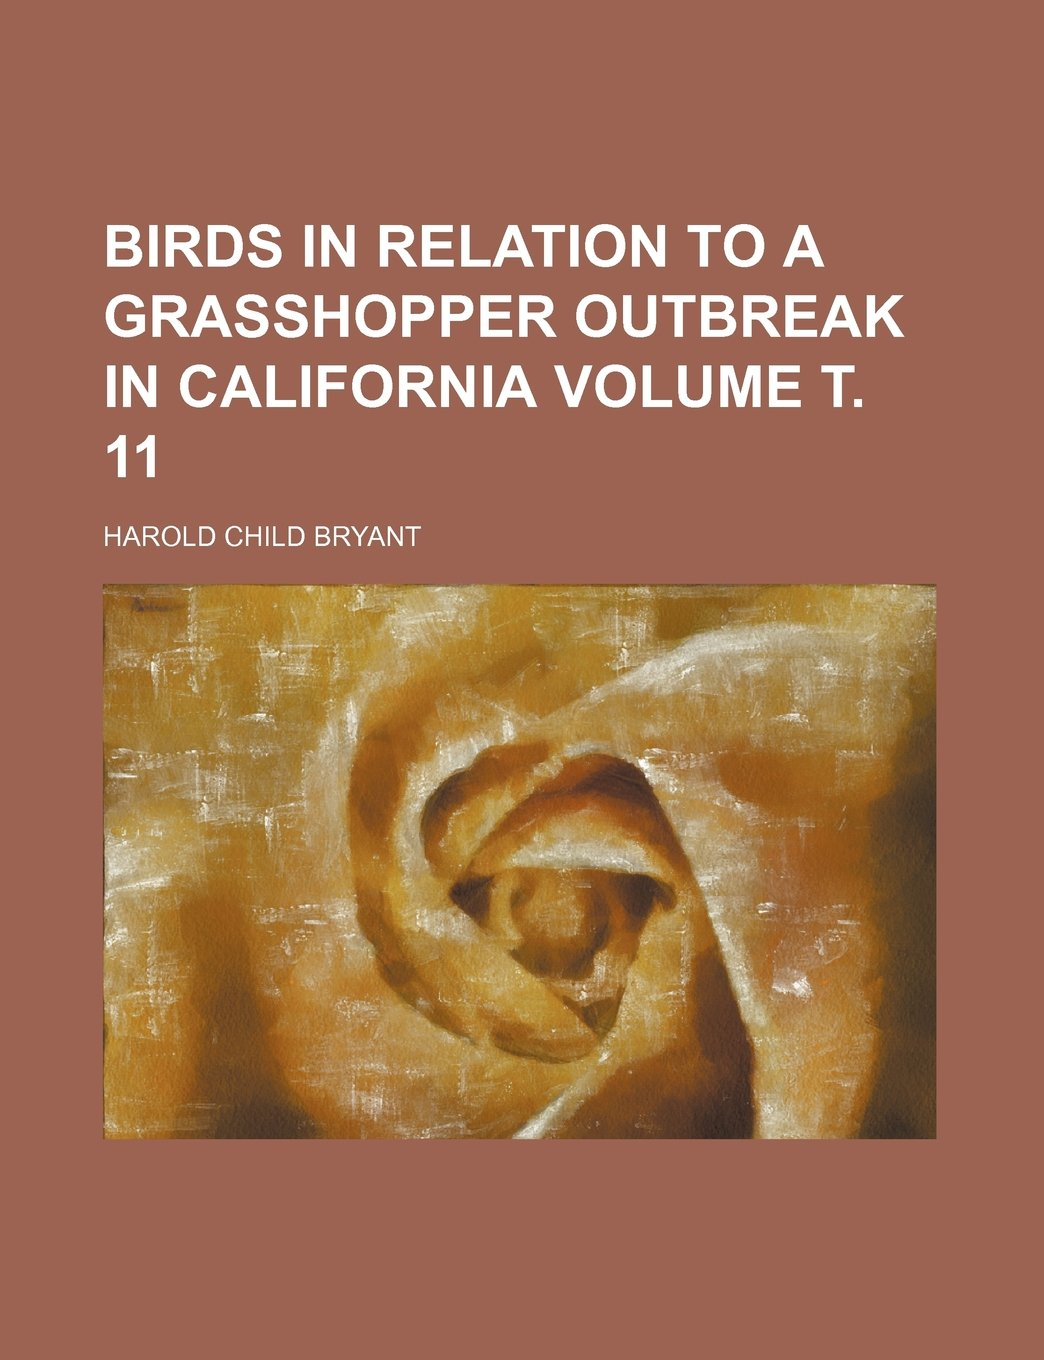 Read Online Birds in relation to a grasshopper outbreak in California Volume т. 11 PDF